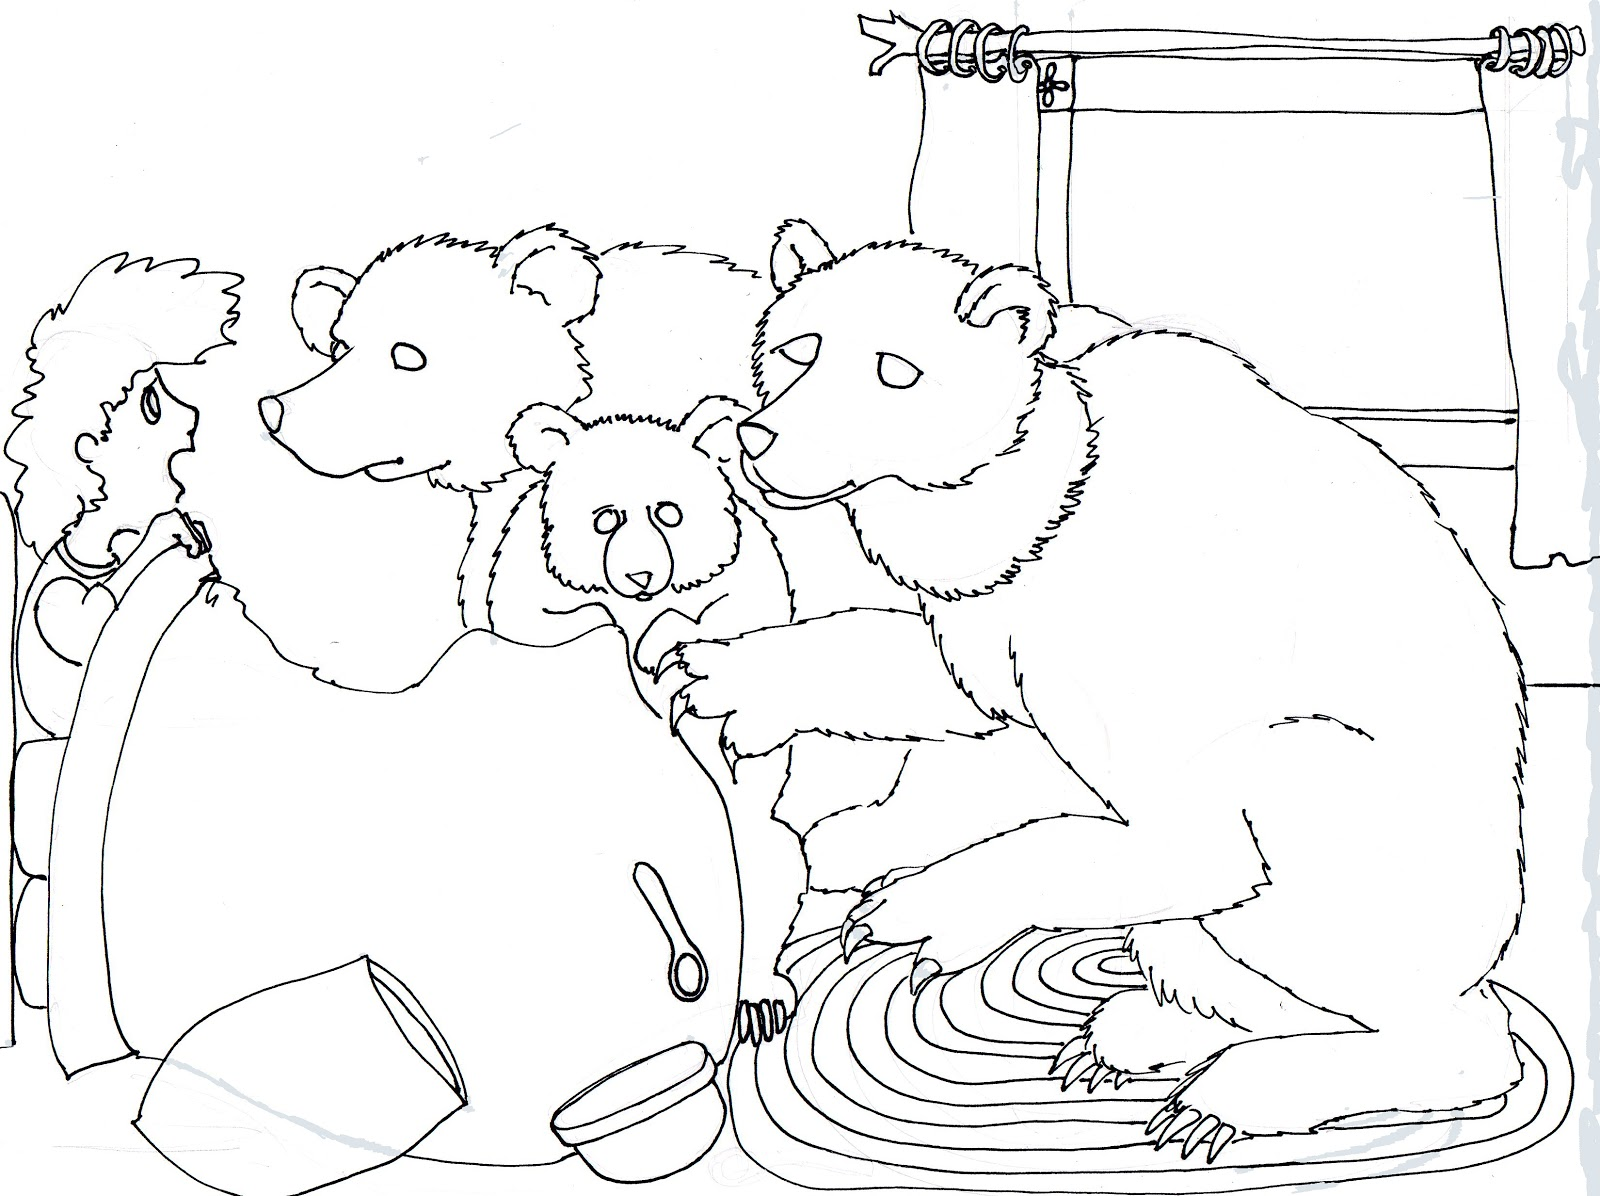 goldilocks coloring page - goldilocks sequencing pictures search results calendar